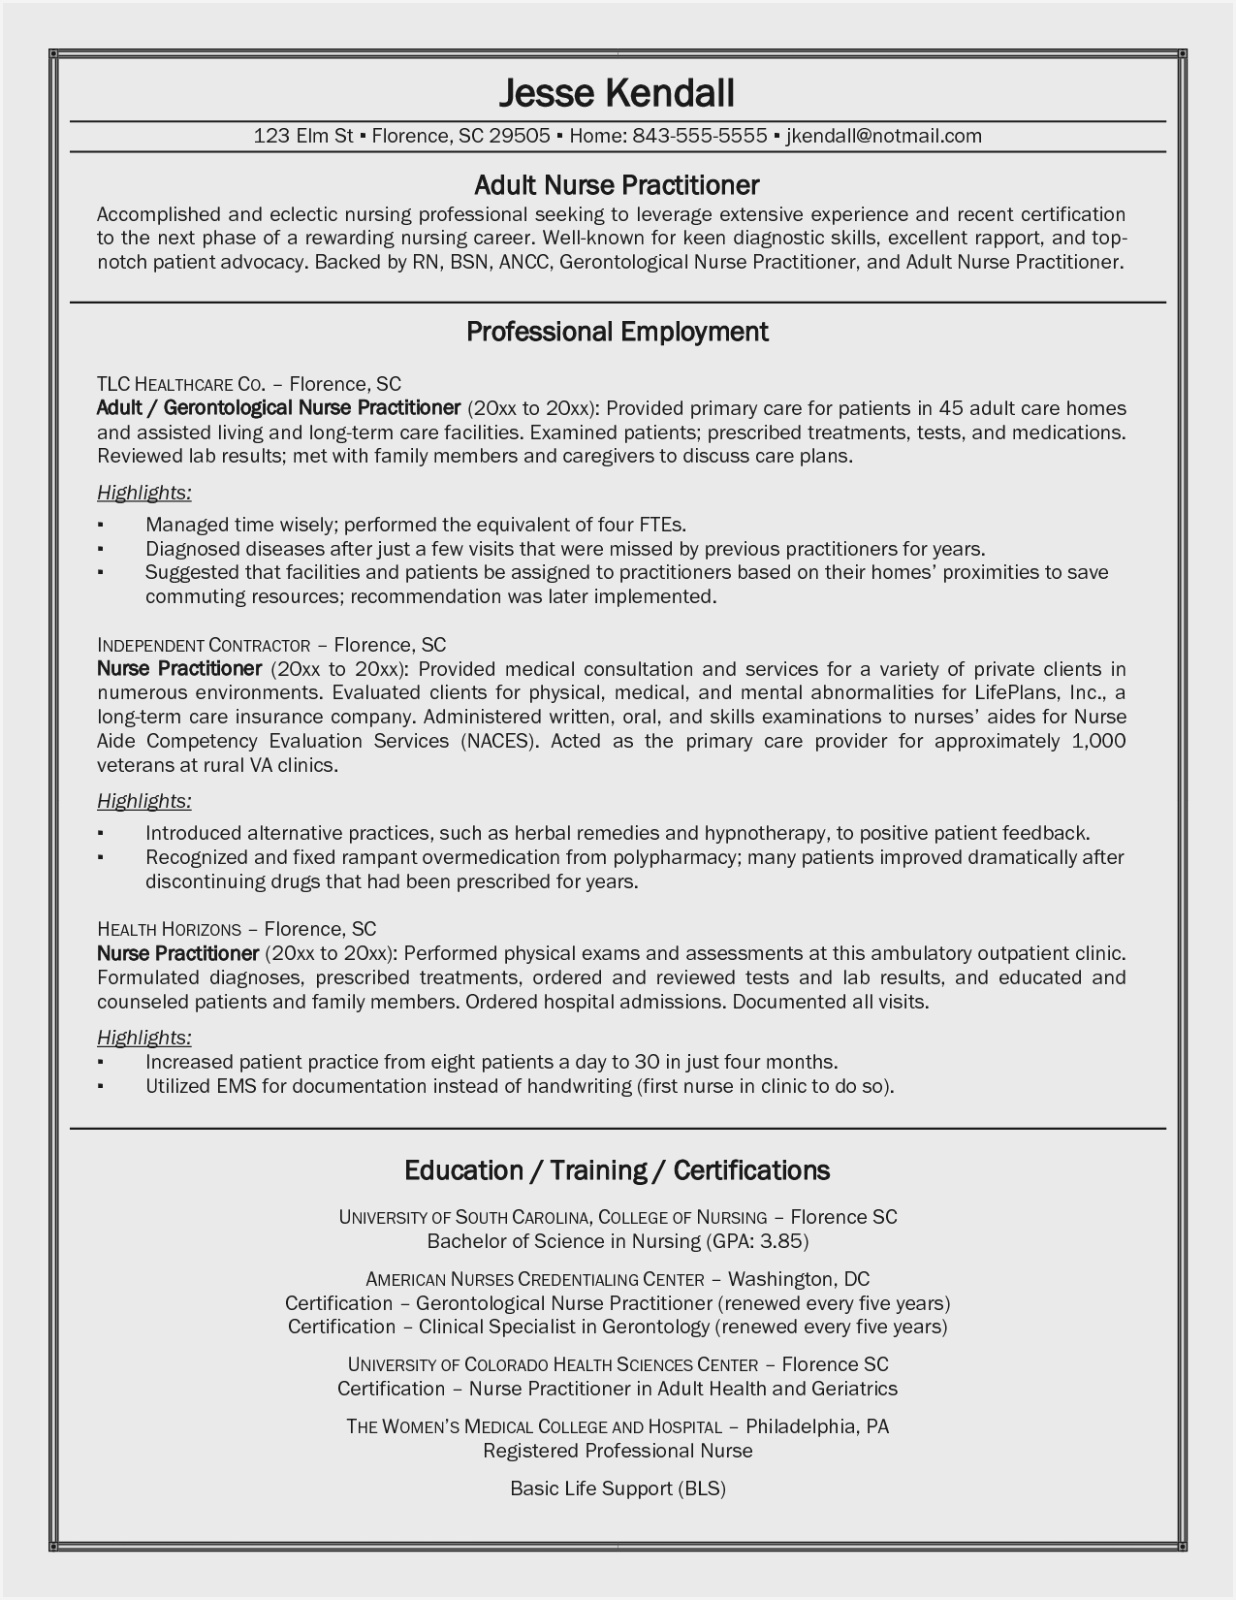 resume writing service pa sample professional services cma candidate esl teacher attach Resume Professional Resume Writing Services Philadelphia